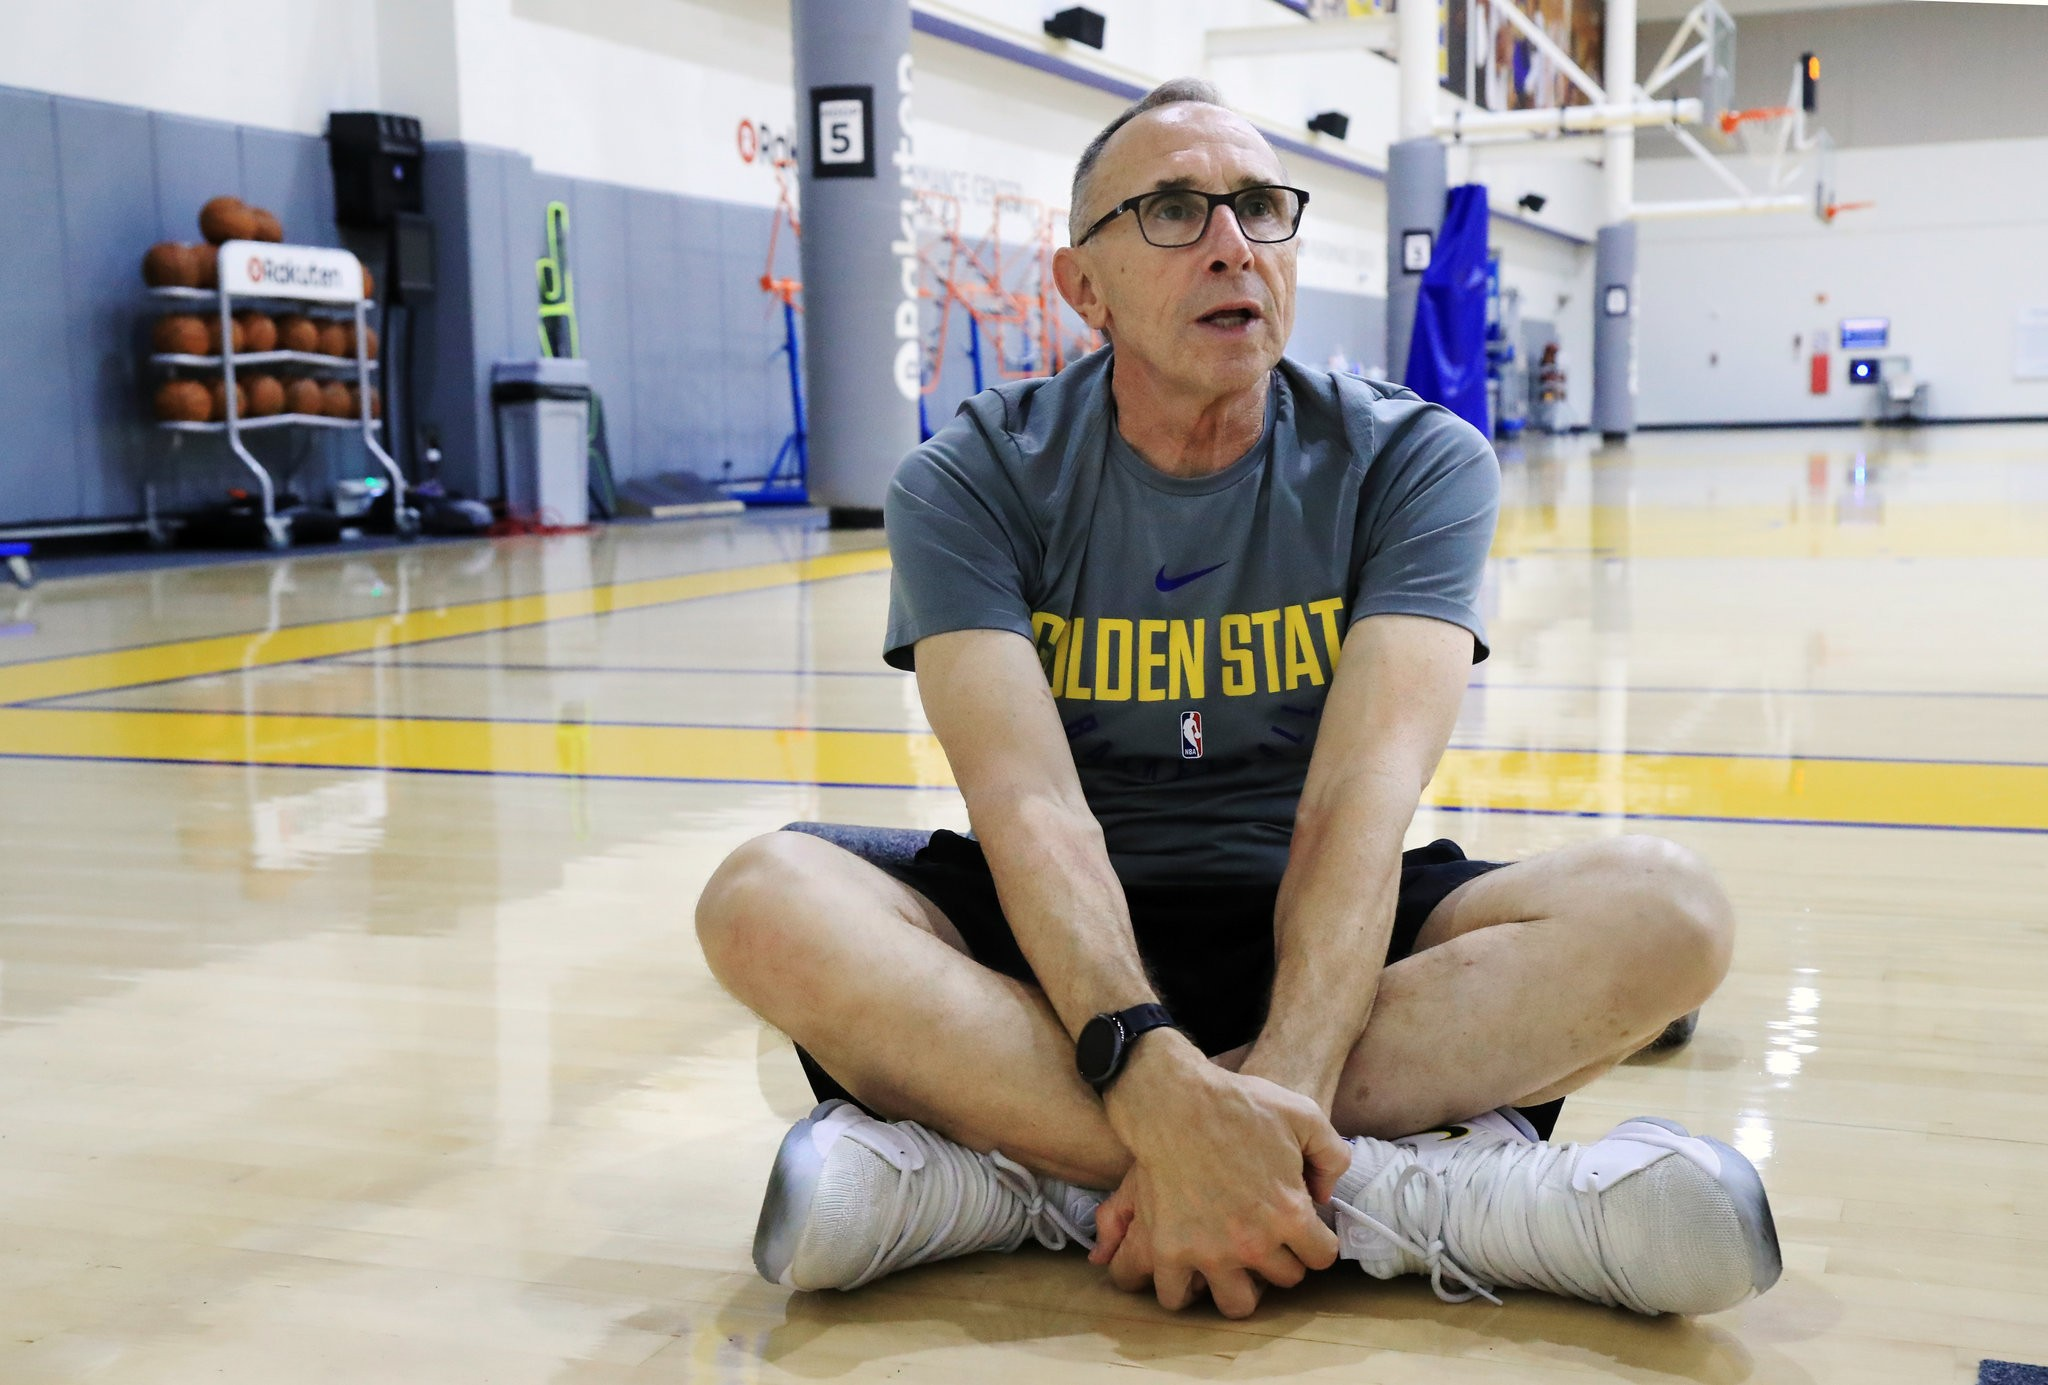 The Golden State Warriors' 70-Year-Old Truth-Teller - The wisdom that has been cultivated over a long career in the NBA has been key to the Warriors success.